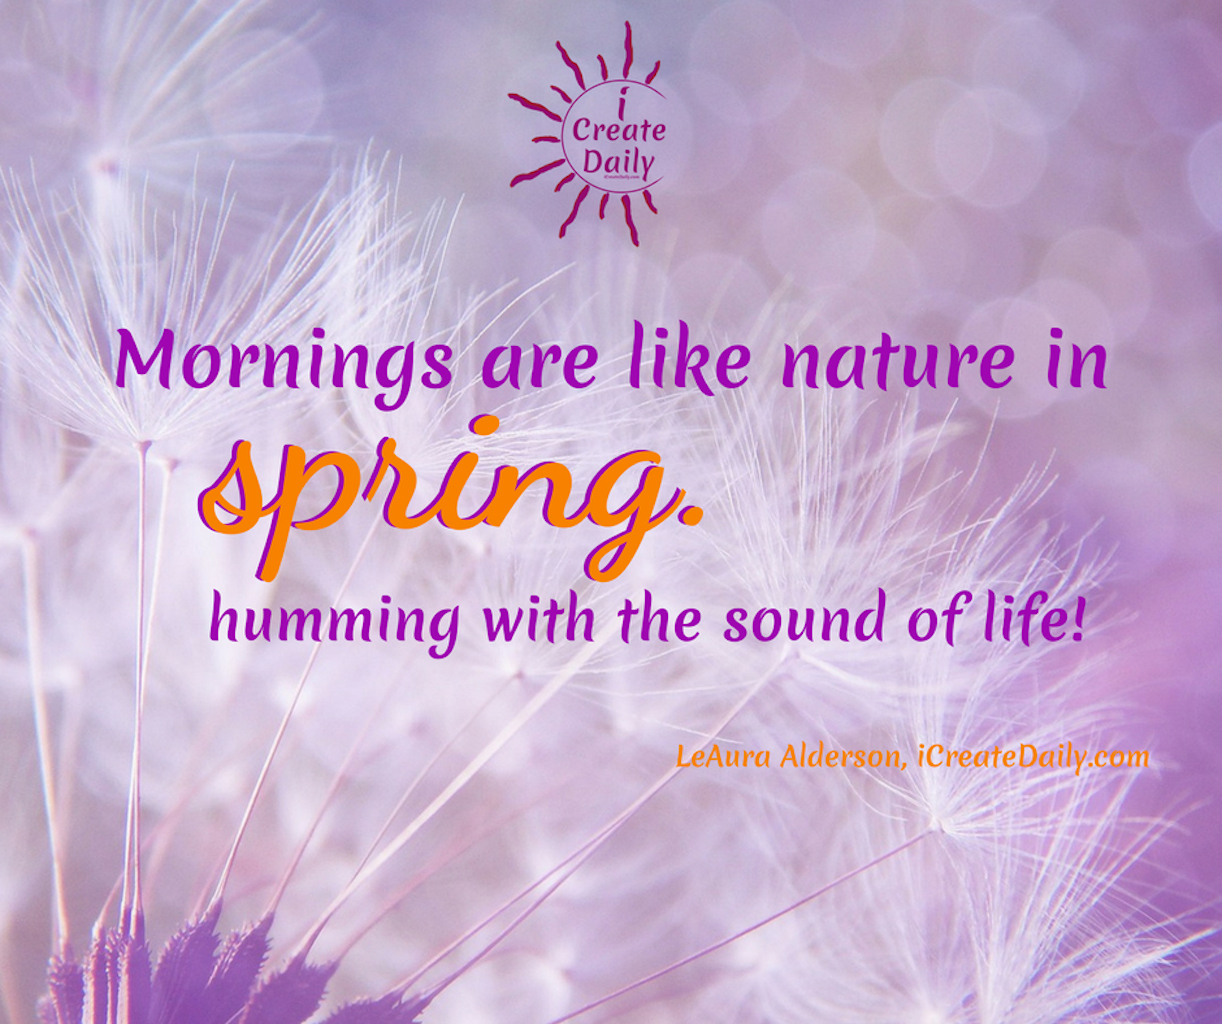 Mornings are like nature in spring. Humming with the sounds of life! ~ LeAura Alderson, iCreateDaily.com Good Morning Quotes and Affirmations. #GoodMorningQuotes #MorningQuotes #Positivity #Inspiration #Encouragement